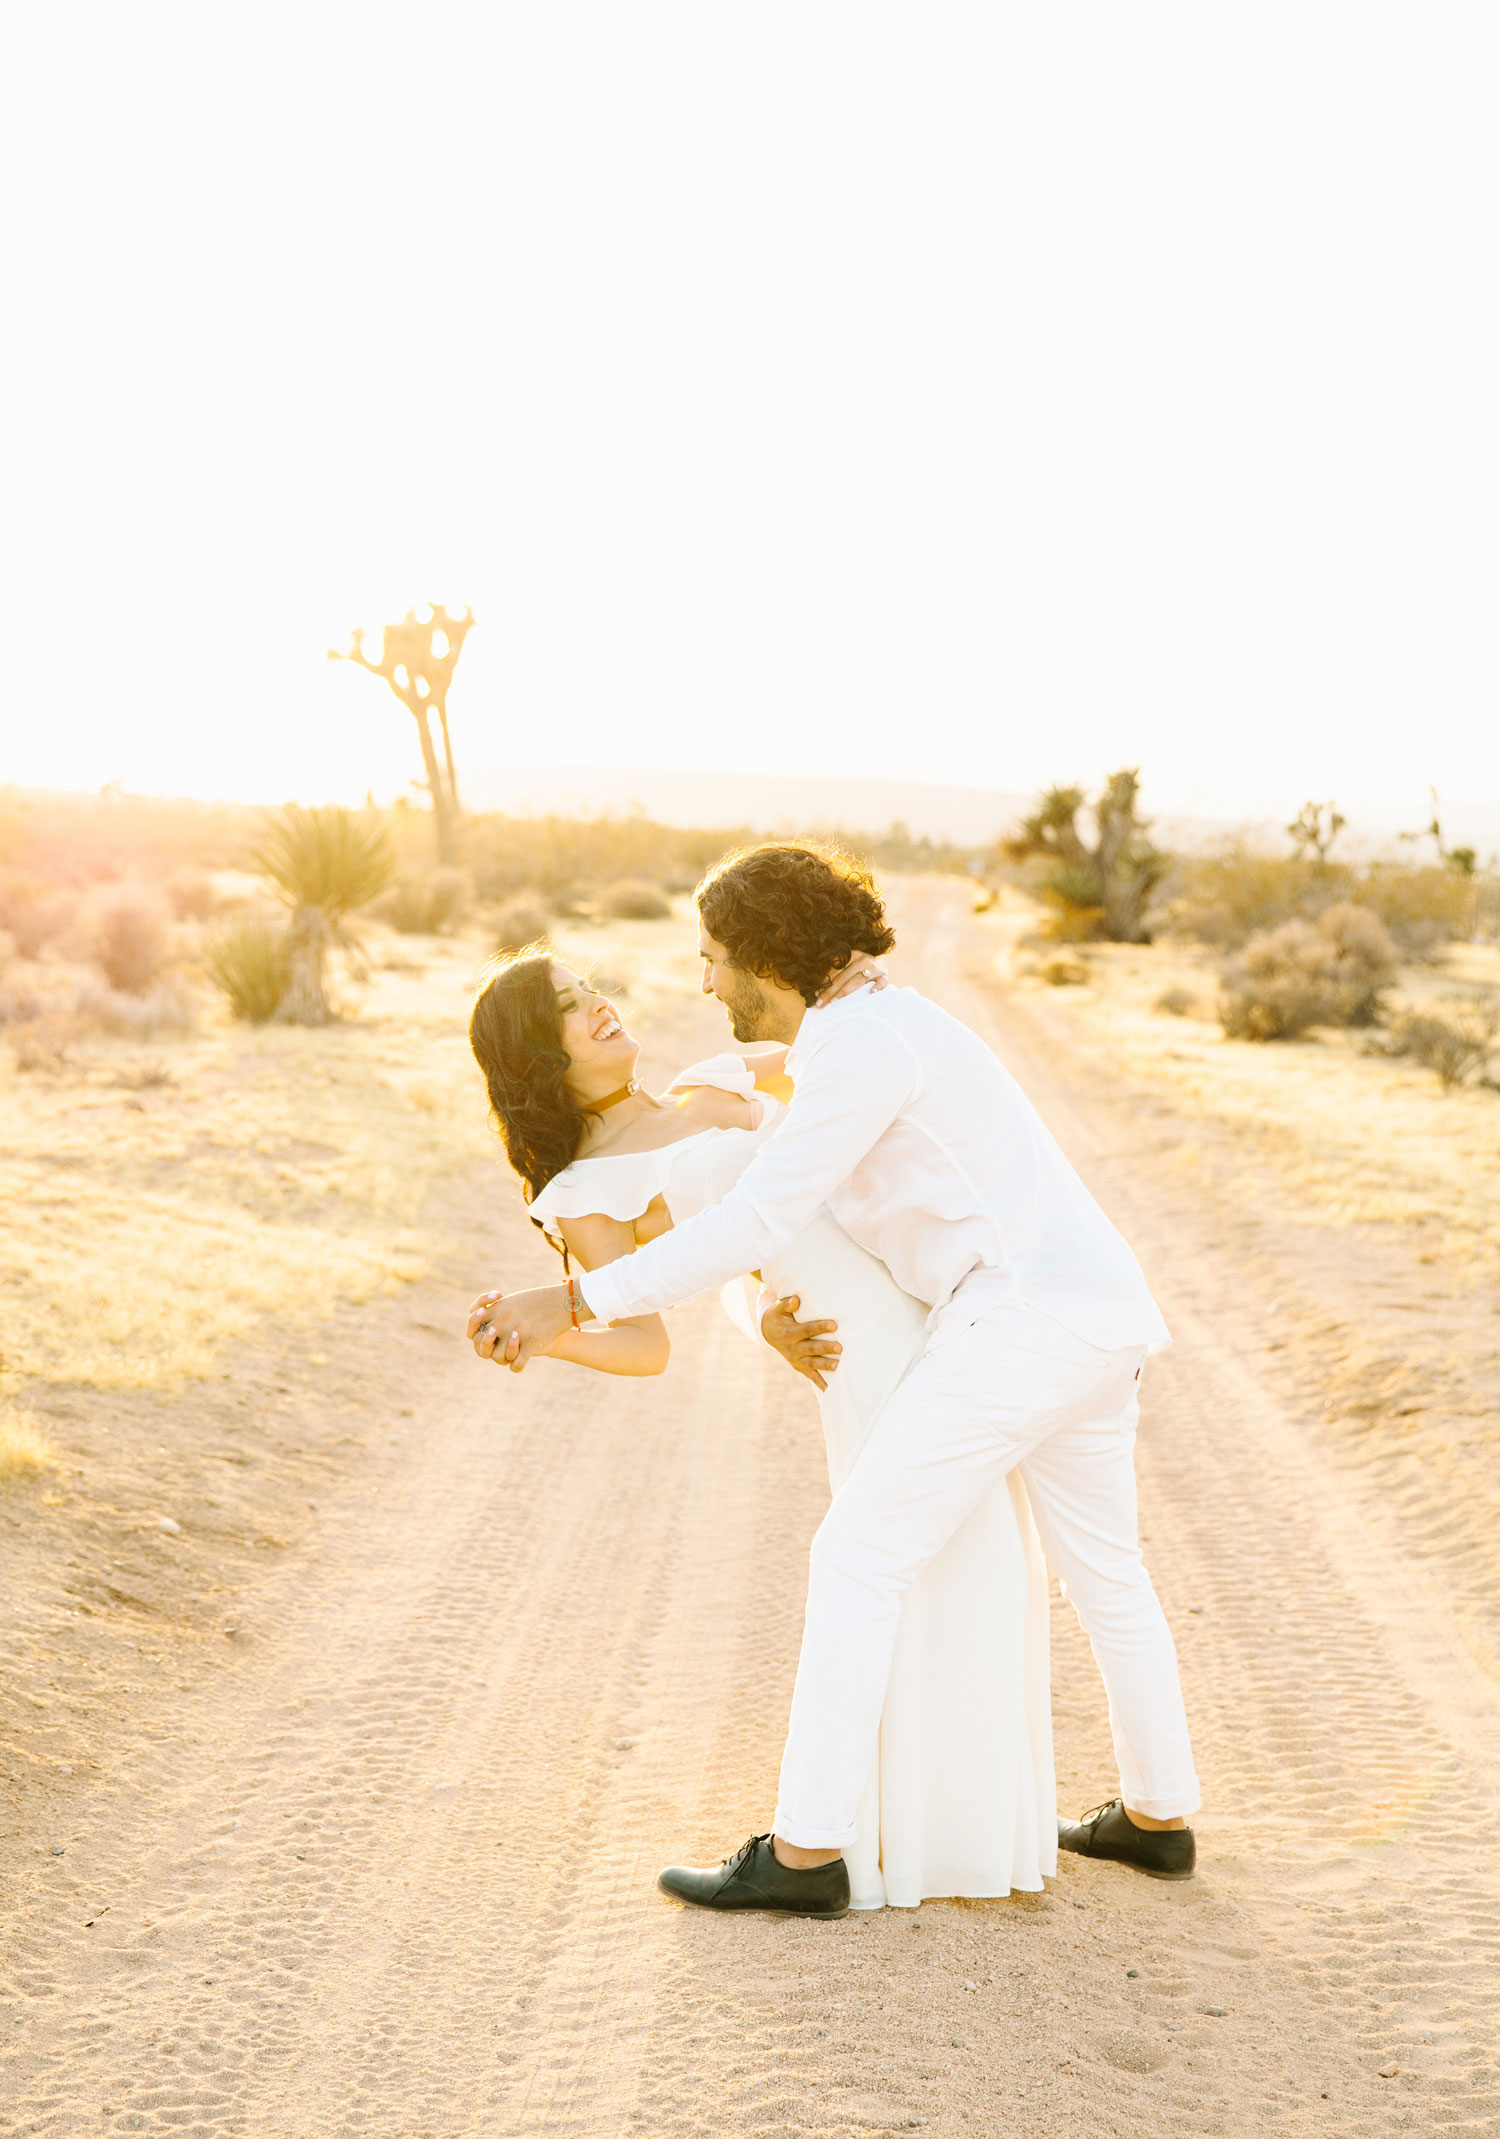 Bride and groom dancing in the desert Joshua Tree engagement shoot ideas